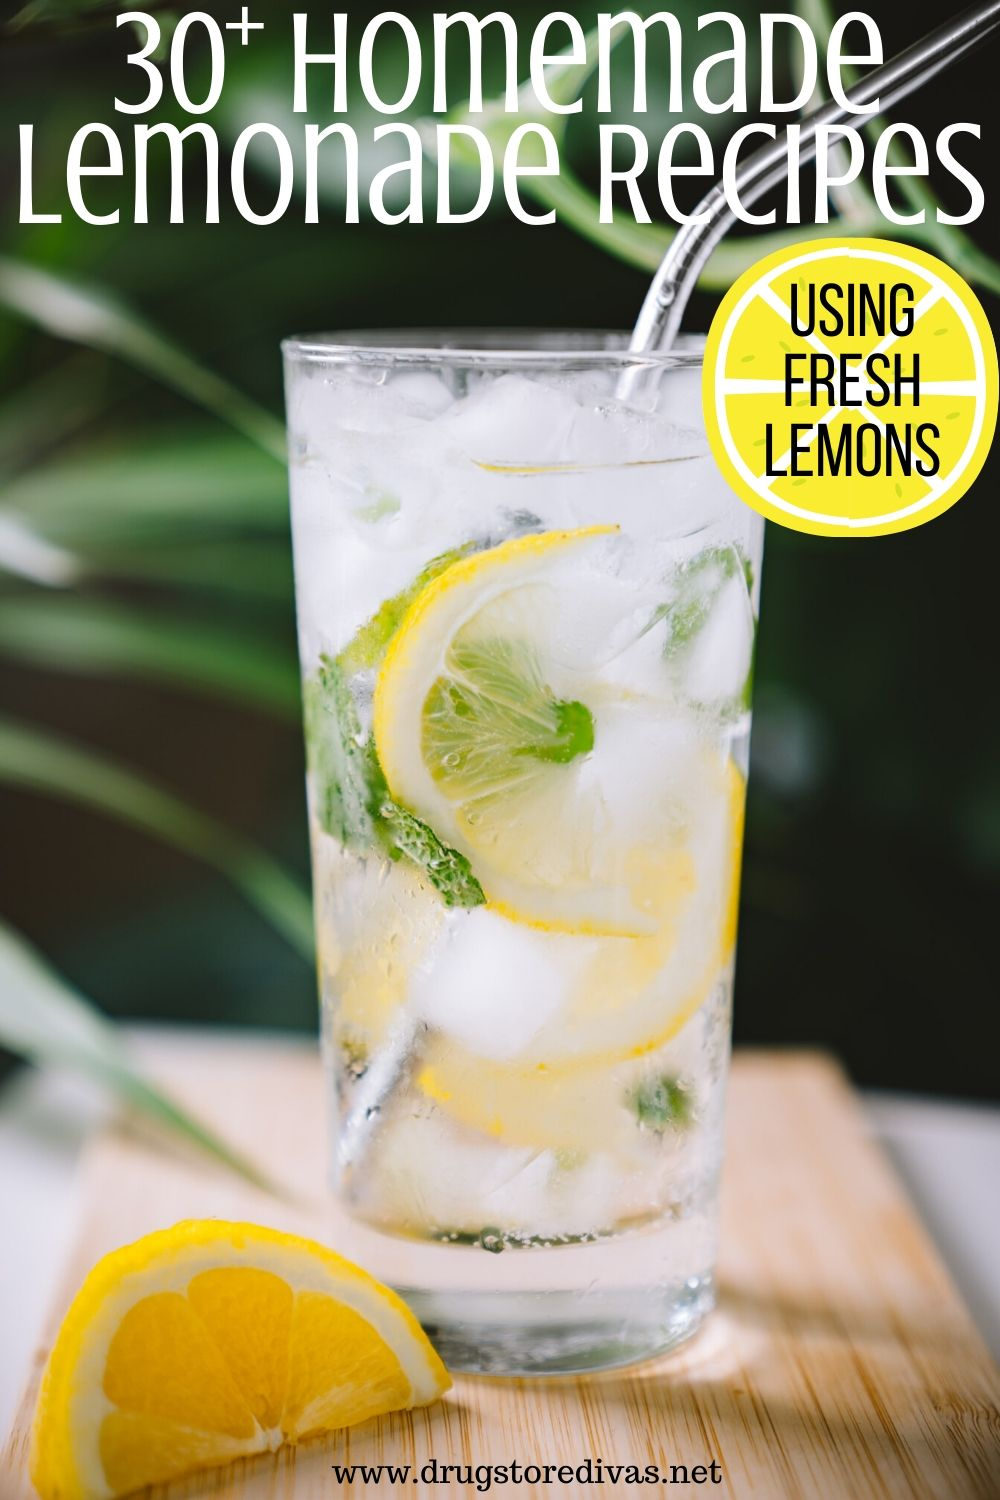 30 Homemade Lemonade Recipes Using Fresh Lemons Drugstore Divas